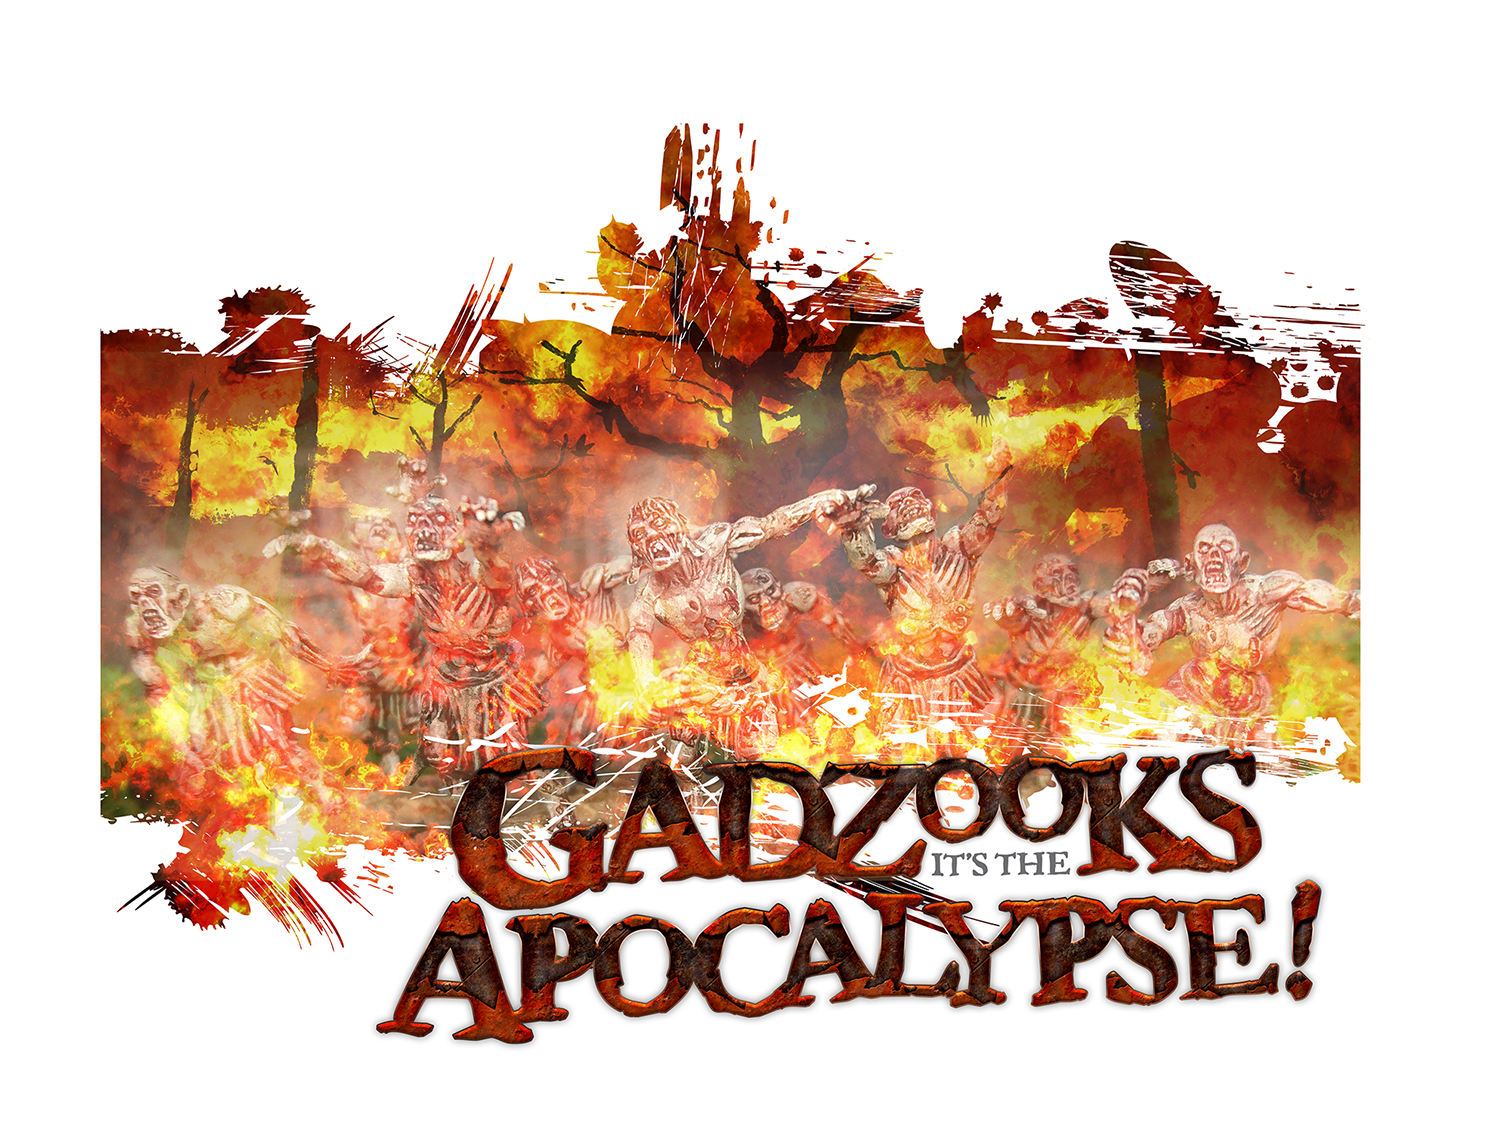 Gadzooks it's the Apocalypse.